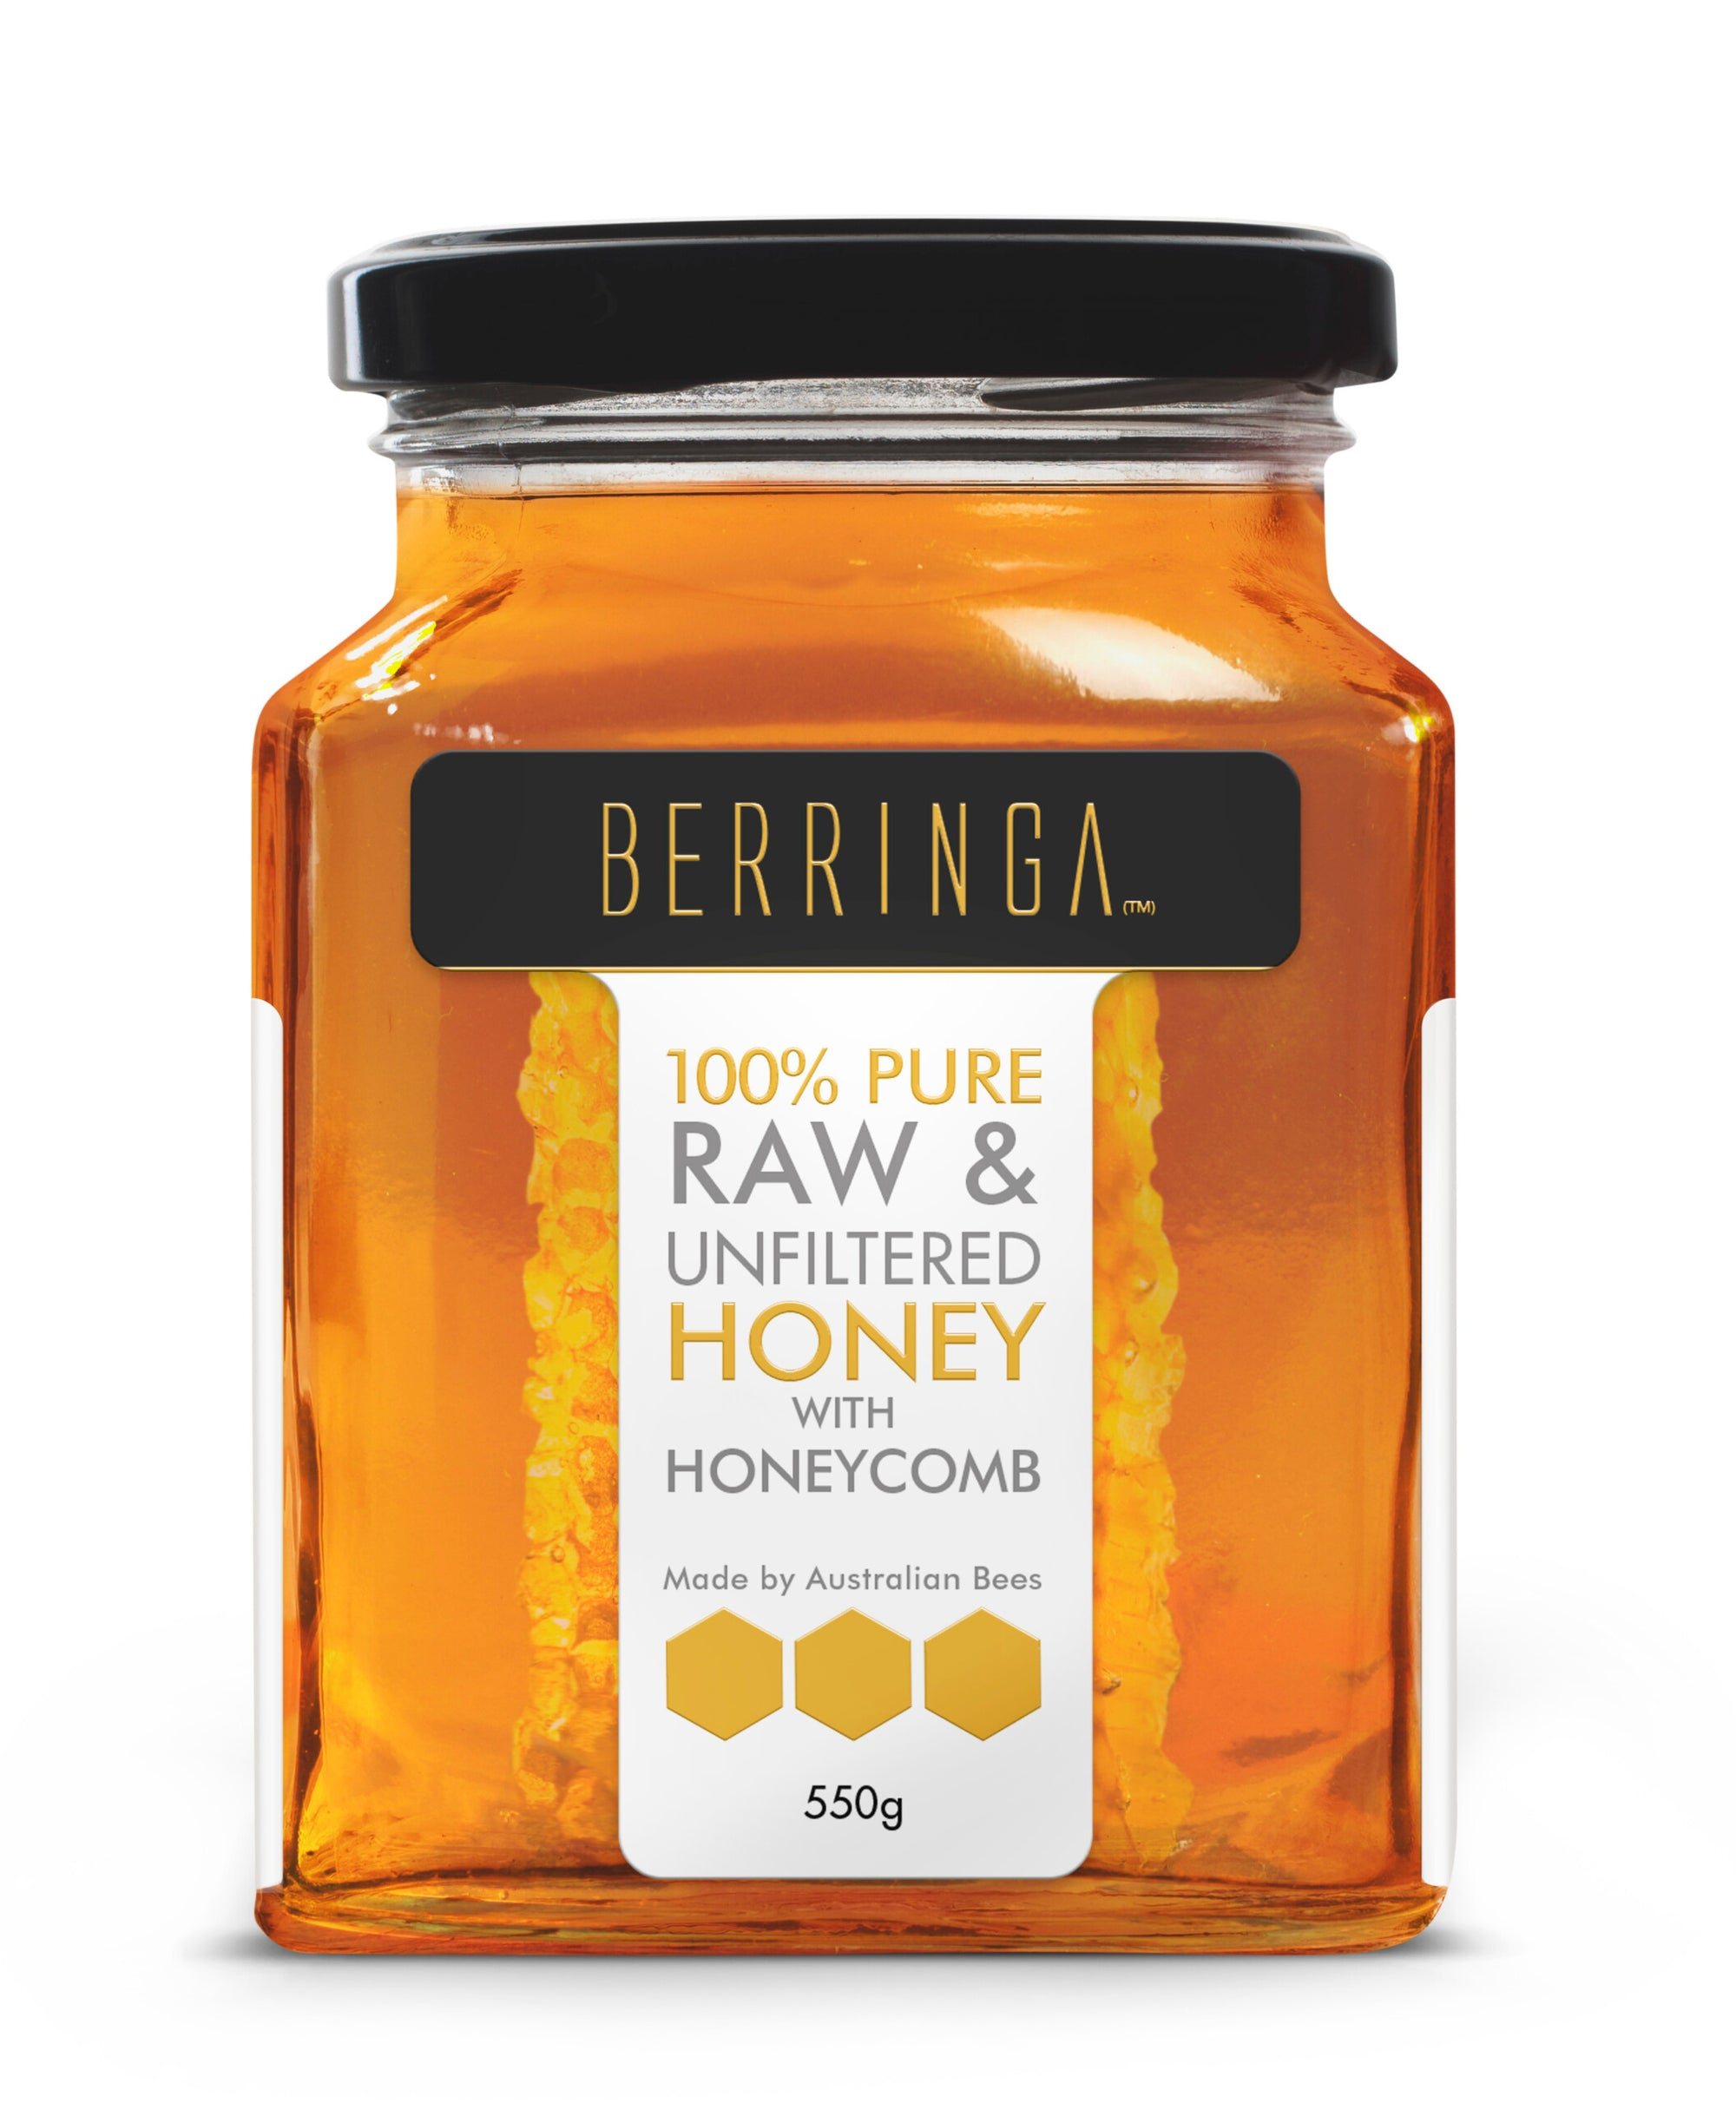 Berringa Honey with Honeycomb